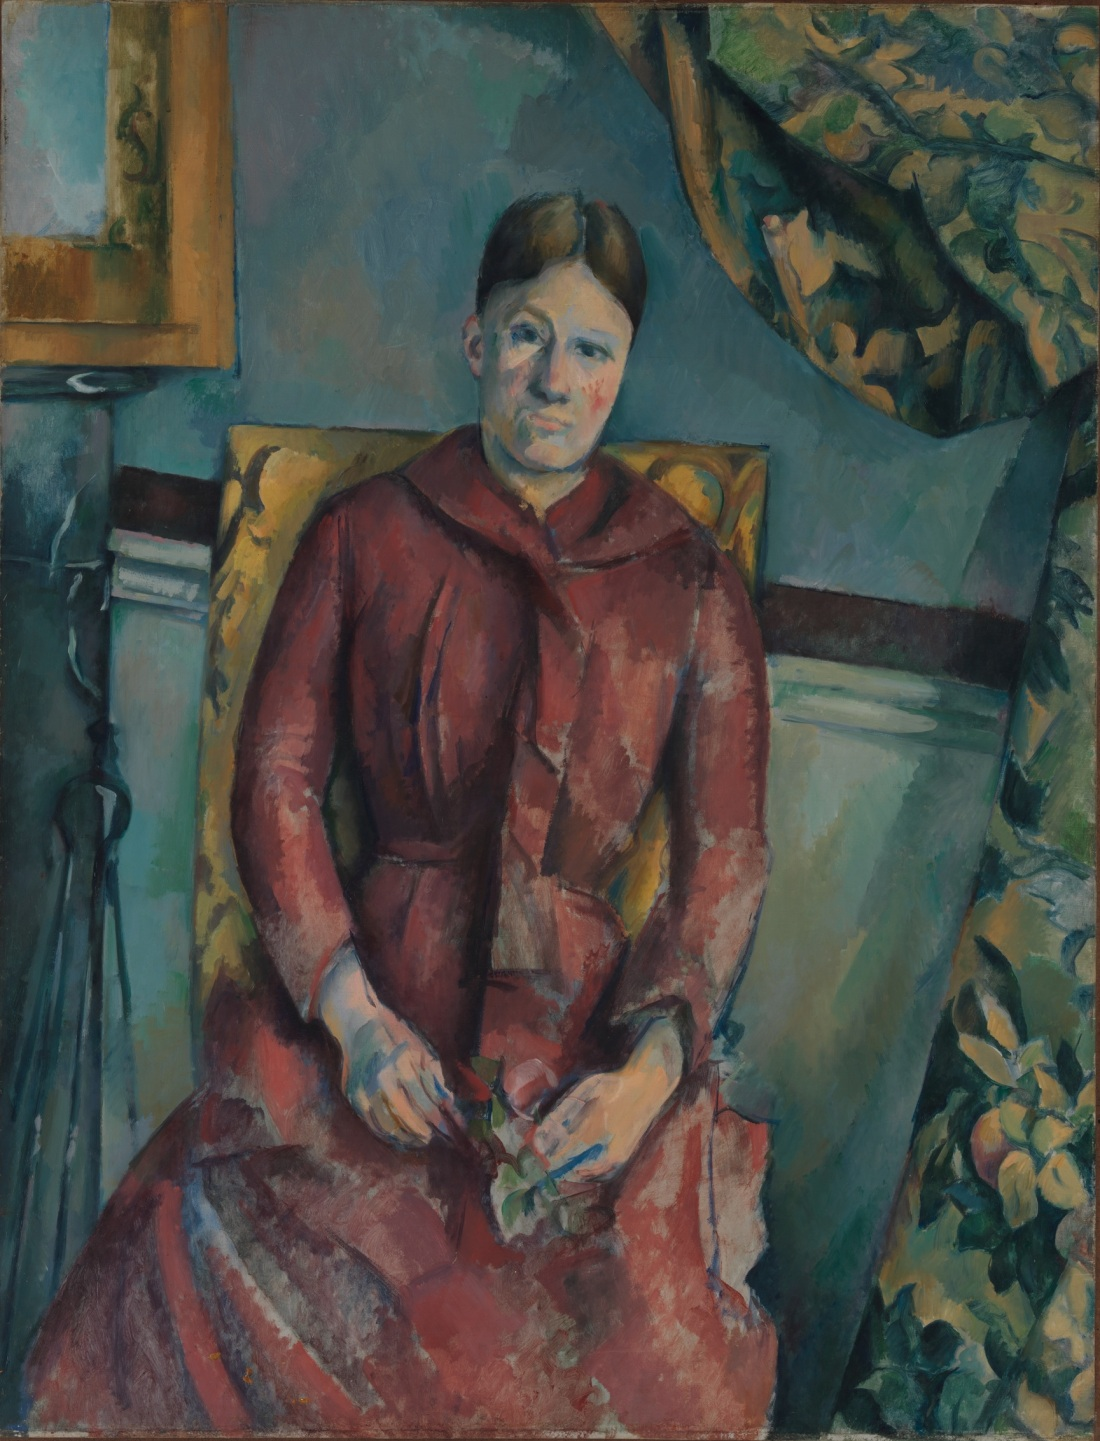 Paul Cezanne, Madame Cezanne in a Red Dress, ca. 1888-90. Collection of the Metropolitan Museum of Art, New York.